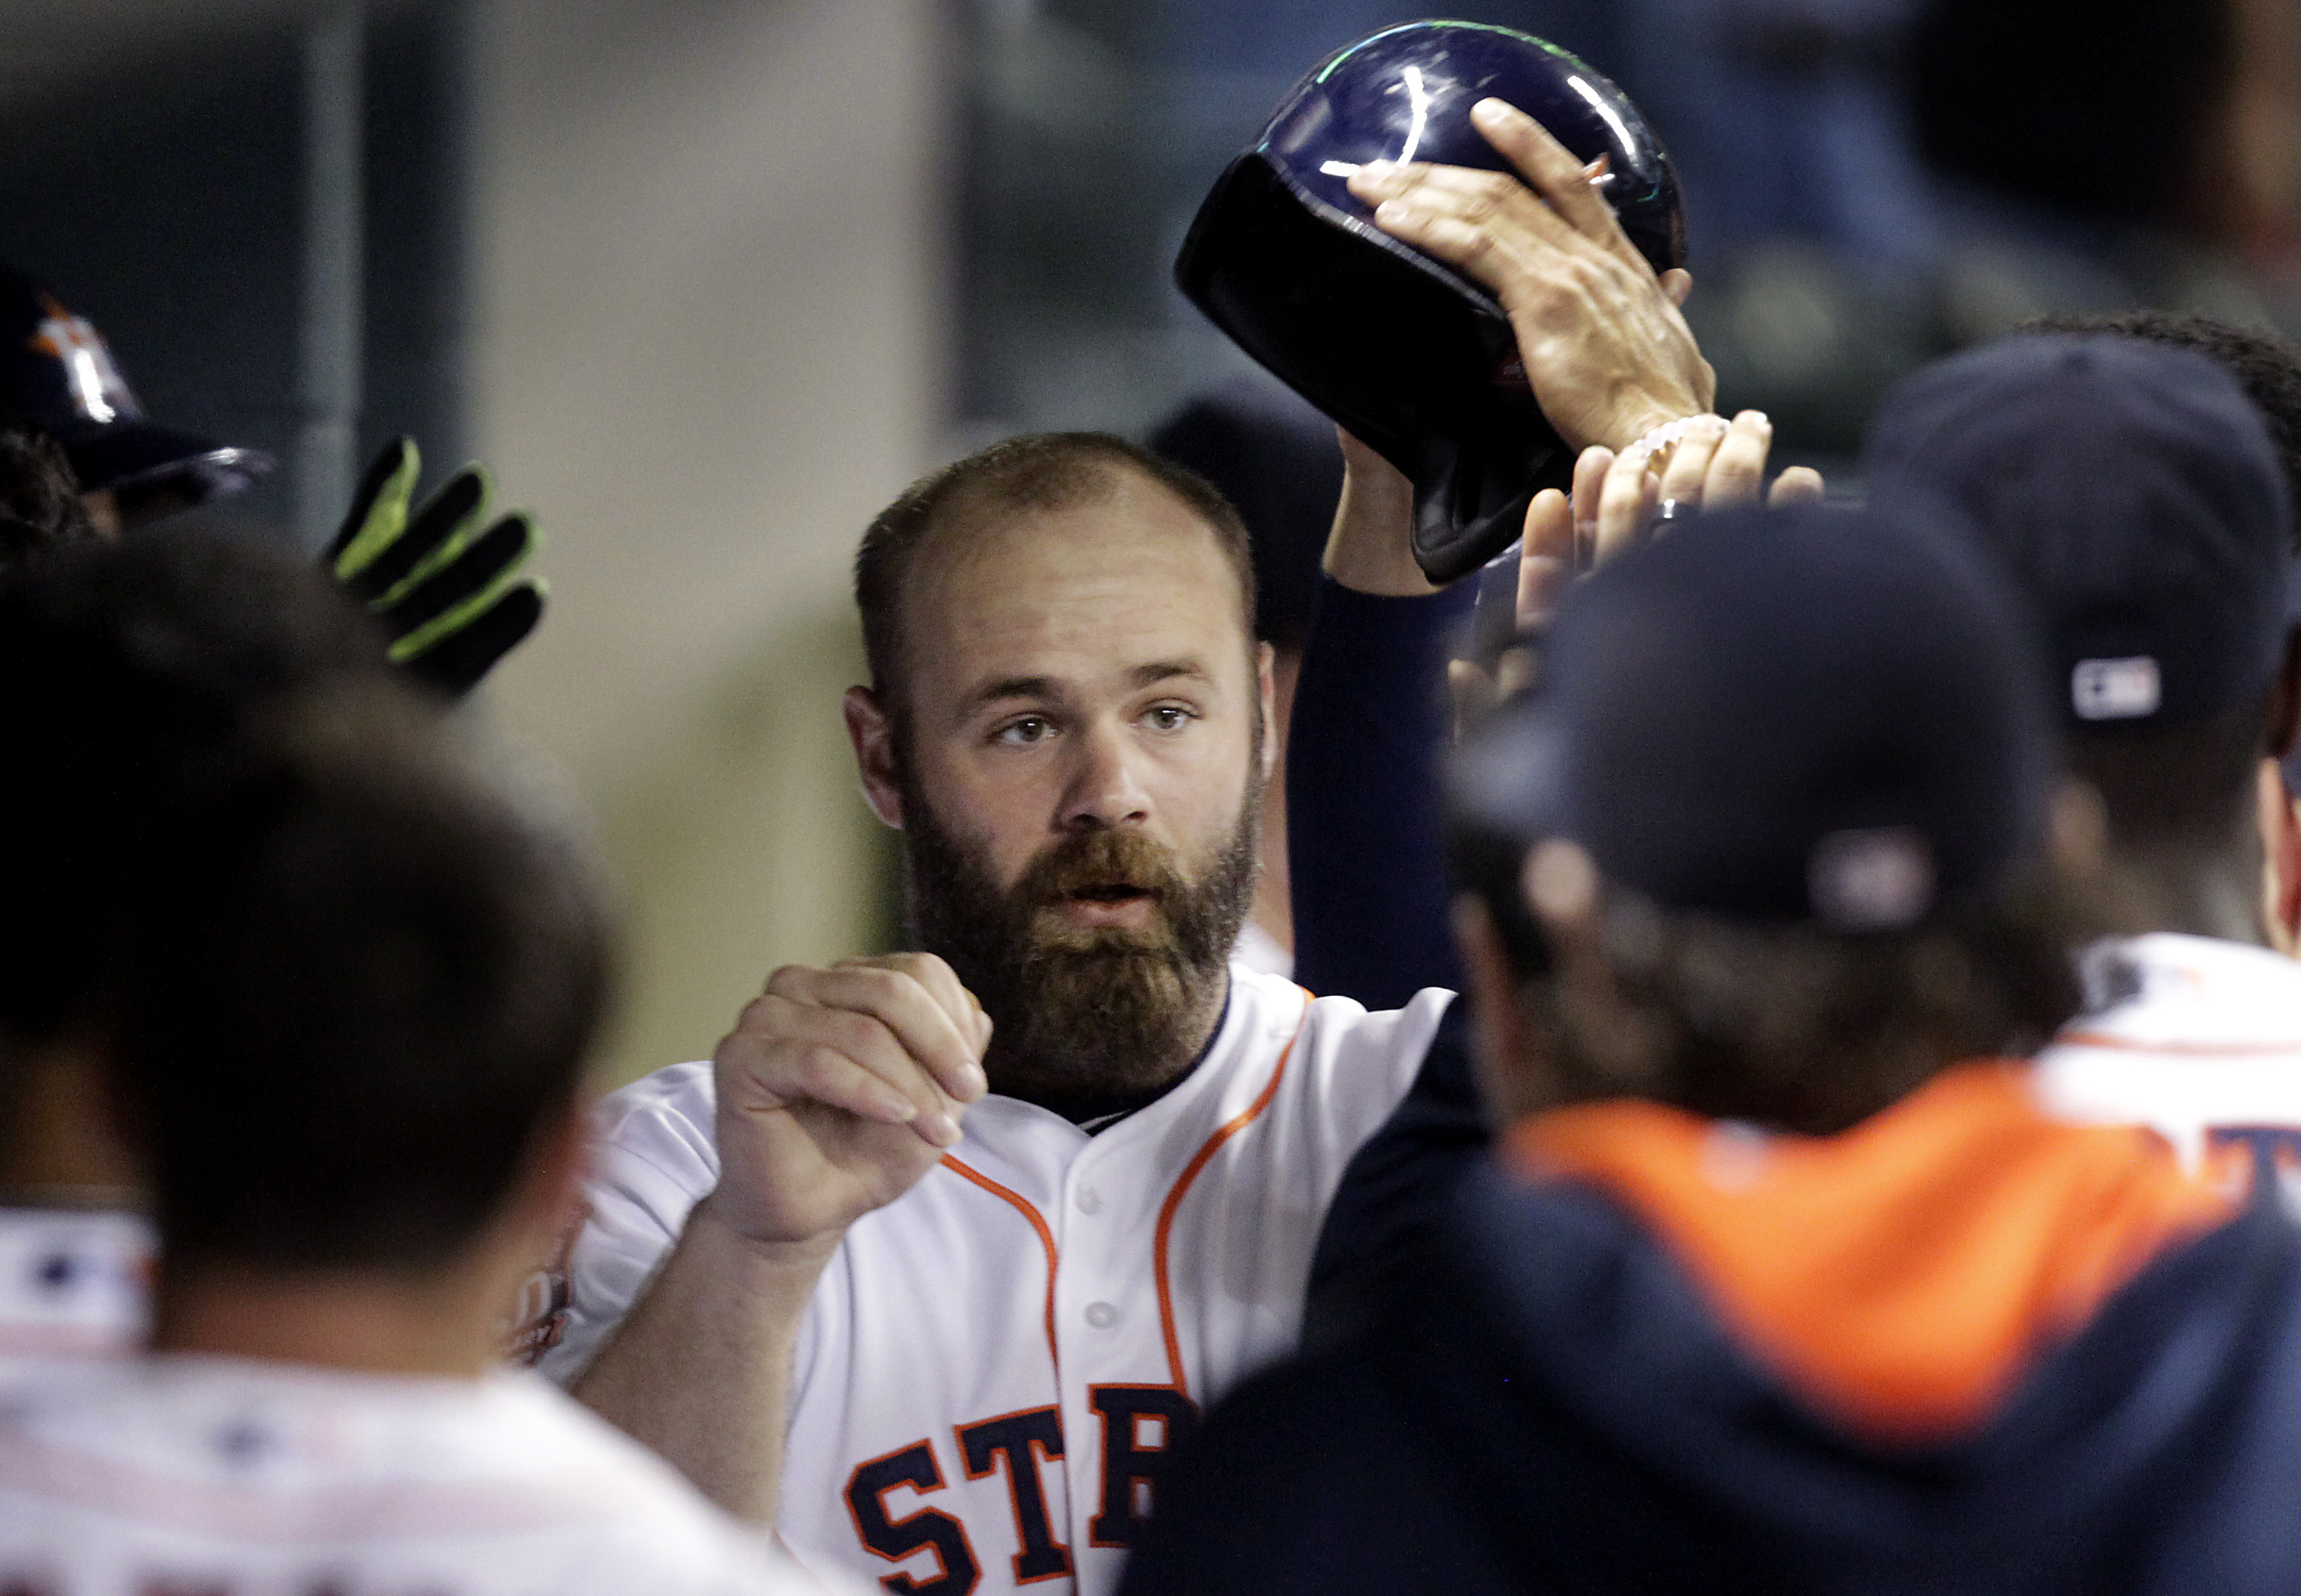 Houston Astros Evan Gattis is congratulated by teammates after hitting a home run during the fourth inning of a baseball game against the Tampa Bay Rays, Monday, August 17, 2015, in Houston. (AP Photo/Patric Schneider)